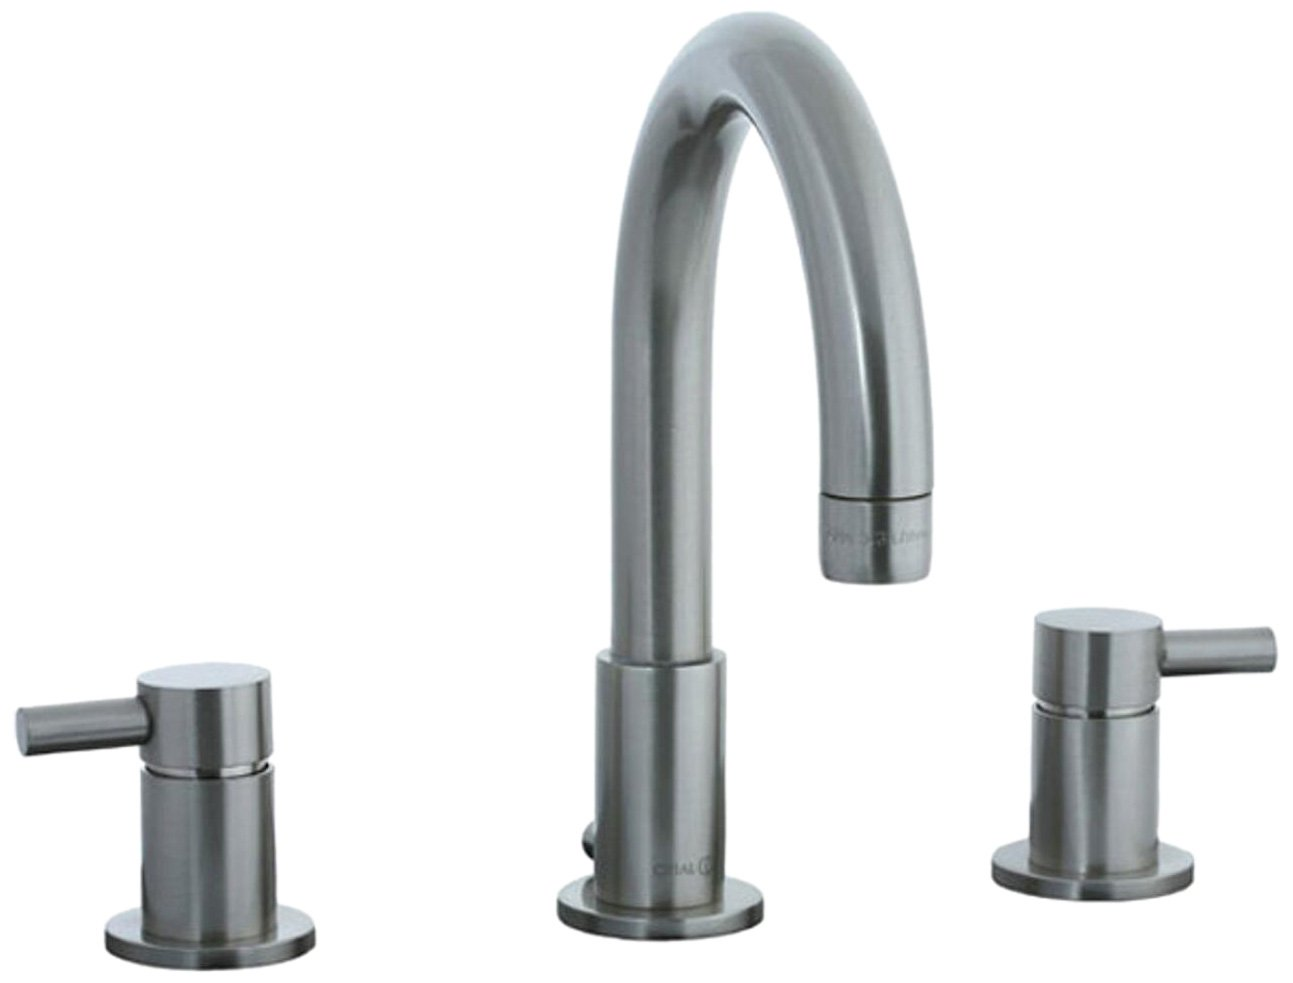 Cifial 221.110.620 Techno Widespread Lavatory Faucet, Satin Nickel ...